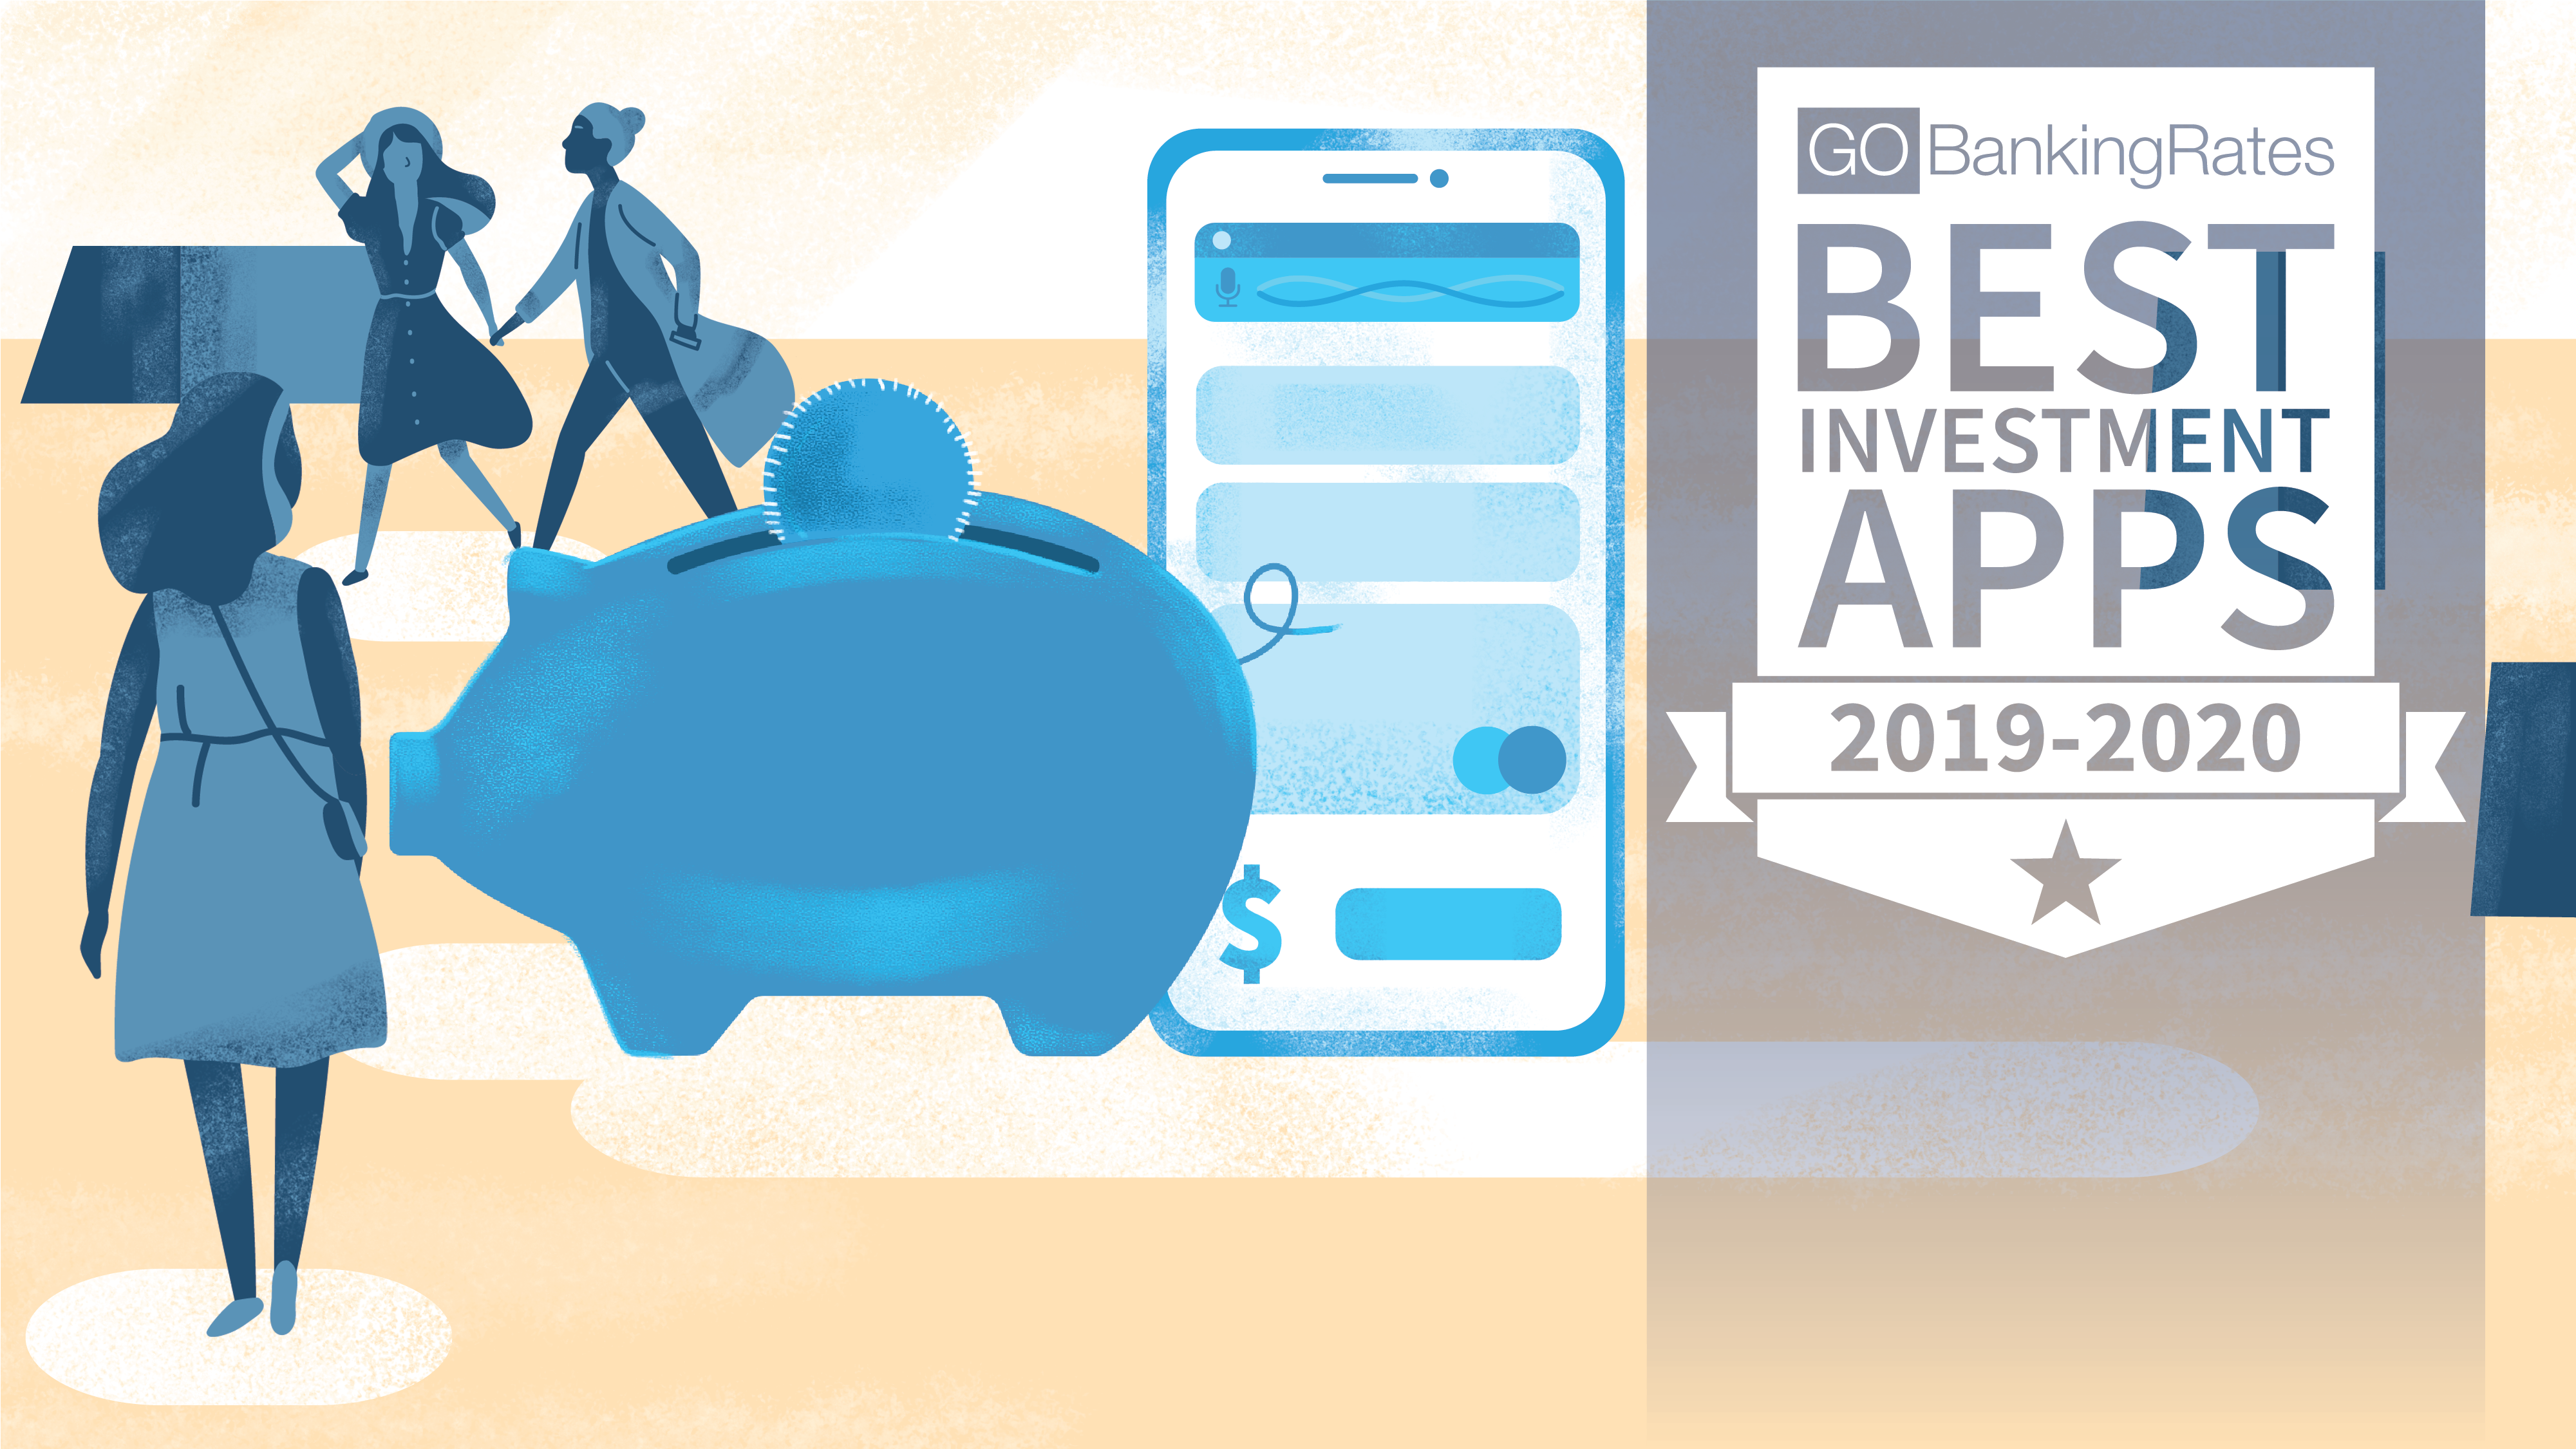 Best Investment Apps of 2019-2020